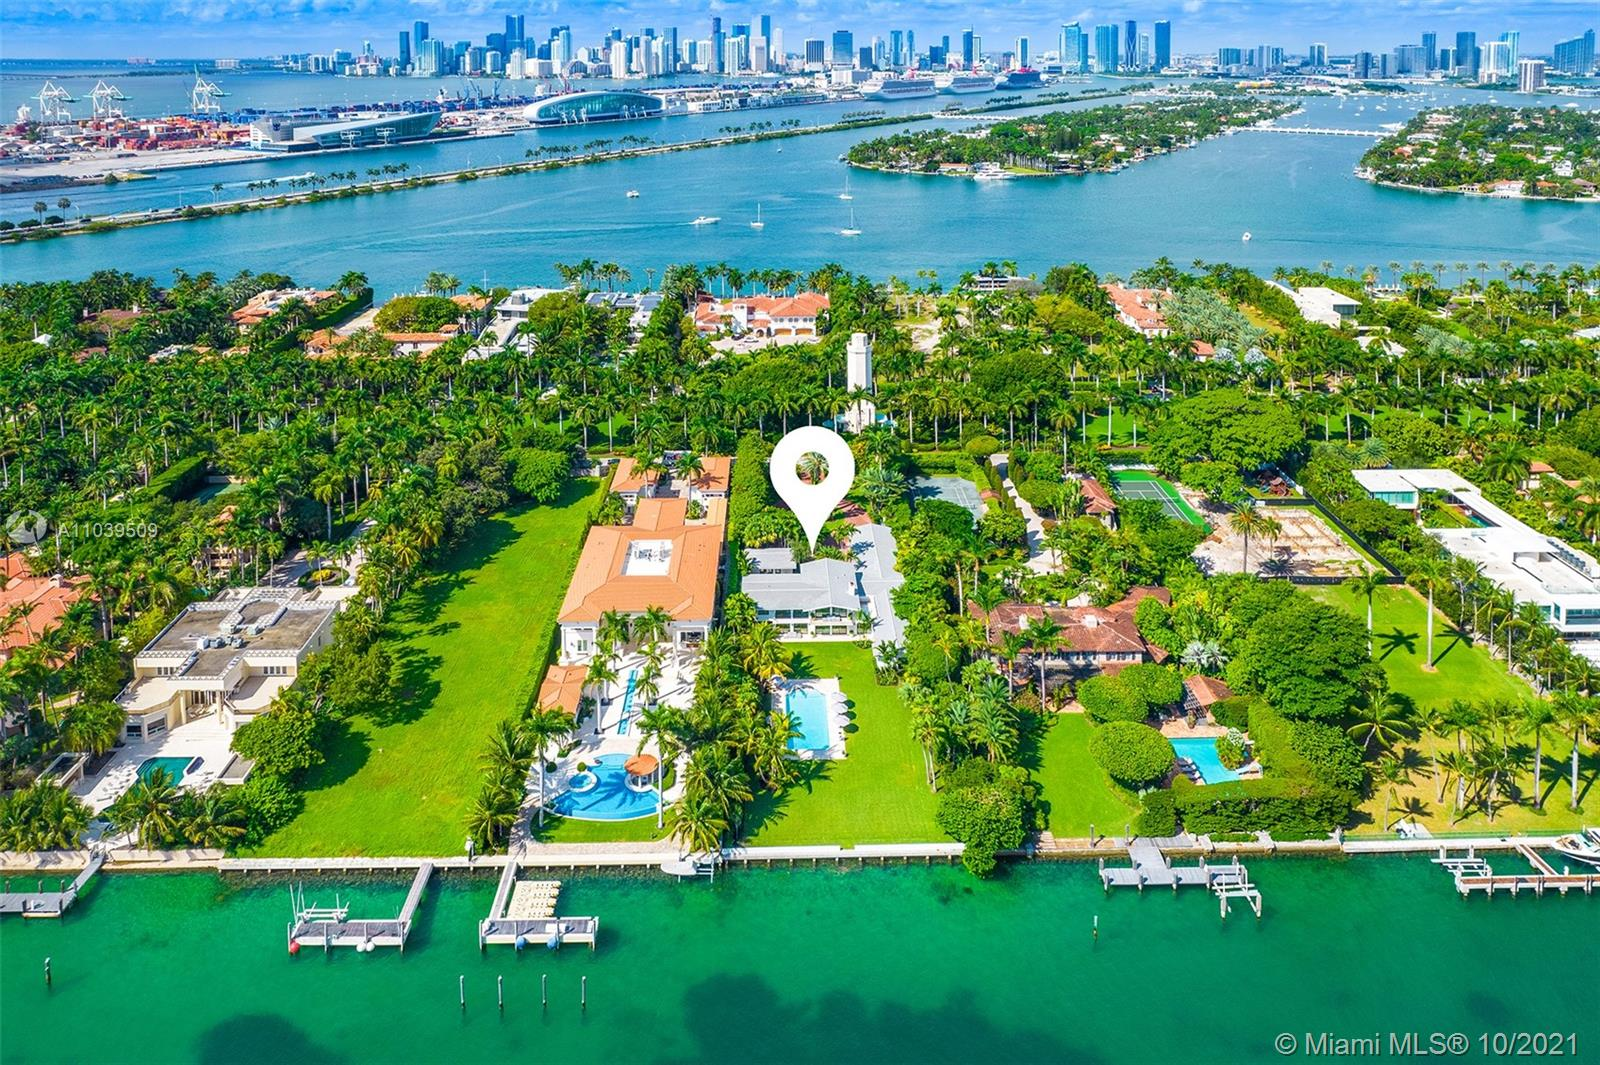 Located on exclusive, guard-gated Star Island, this fully re-imaged and rebuilt Miami Modern house by Todd Michael Glazer occupies an impressive 40,000 sf lot with dockage to accommodate up to 90' yacht only minutes from Miami Beach Marina and open water to the ocean. This 9 BR/9 +1 BA includes separate guest house with kitchen and spacious second floor master suite with balcony overlooking the huge outdoor entertainment space.  Lushly landscaped grounds feature tropical foliage, large resort size pool and automatic gate for privacy and security.  This estate is truly a one of a kind location with access to endless restaurants and shopping of South Beach, Brickell and the new Design District. Additional 2000 sf added in the new renovation for adjusted 9945 sf w/ completion August 2021.